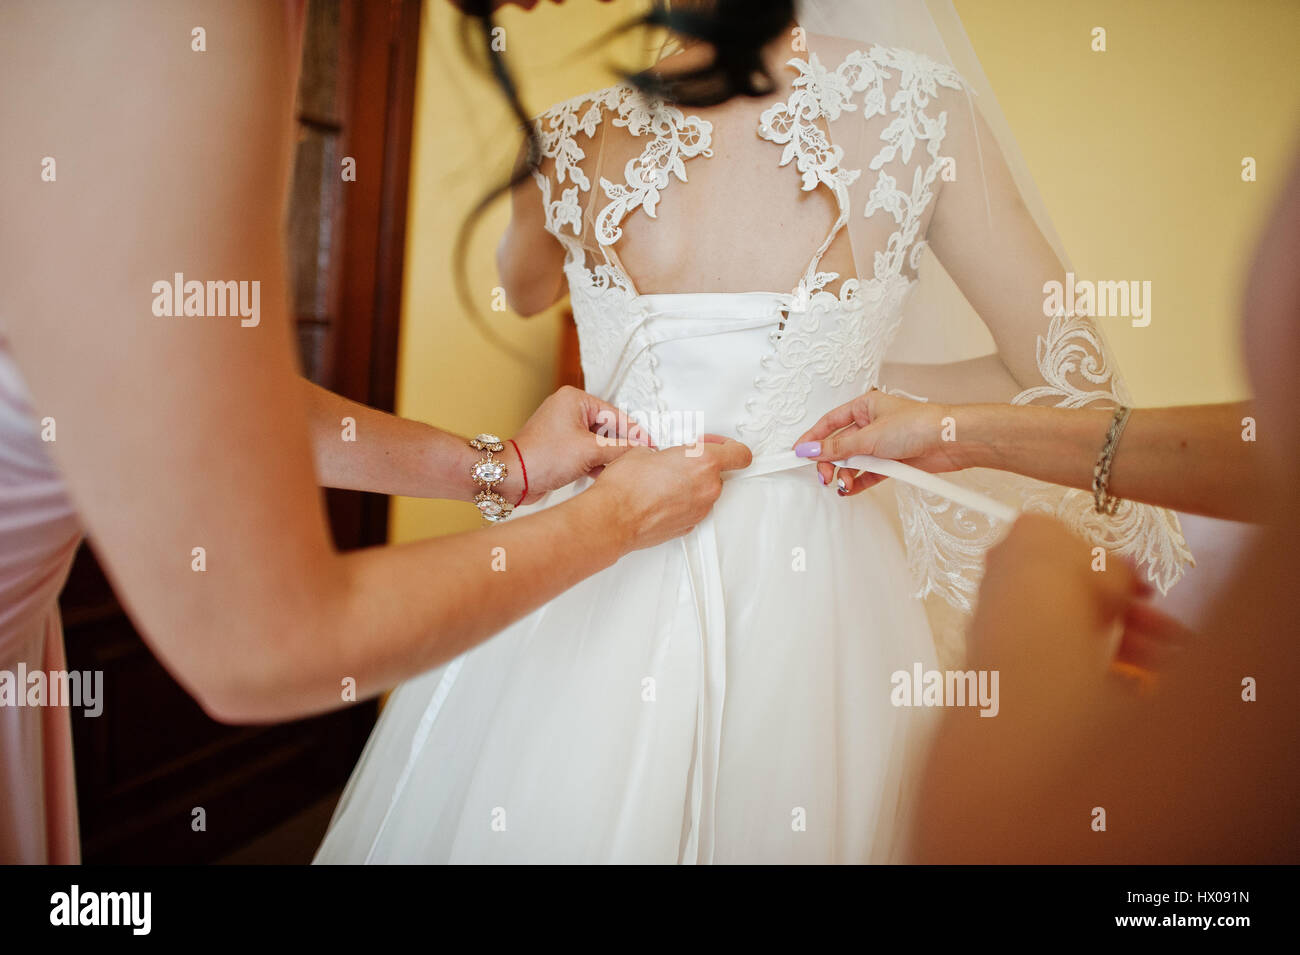 58fb1015a97e Fashionable bridesmaids on pink dresses helped wear bow on back of wedding  dress bride. Morning wedding day.